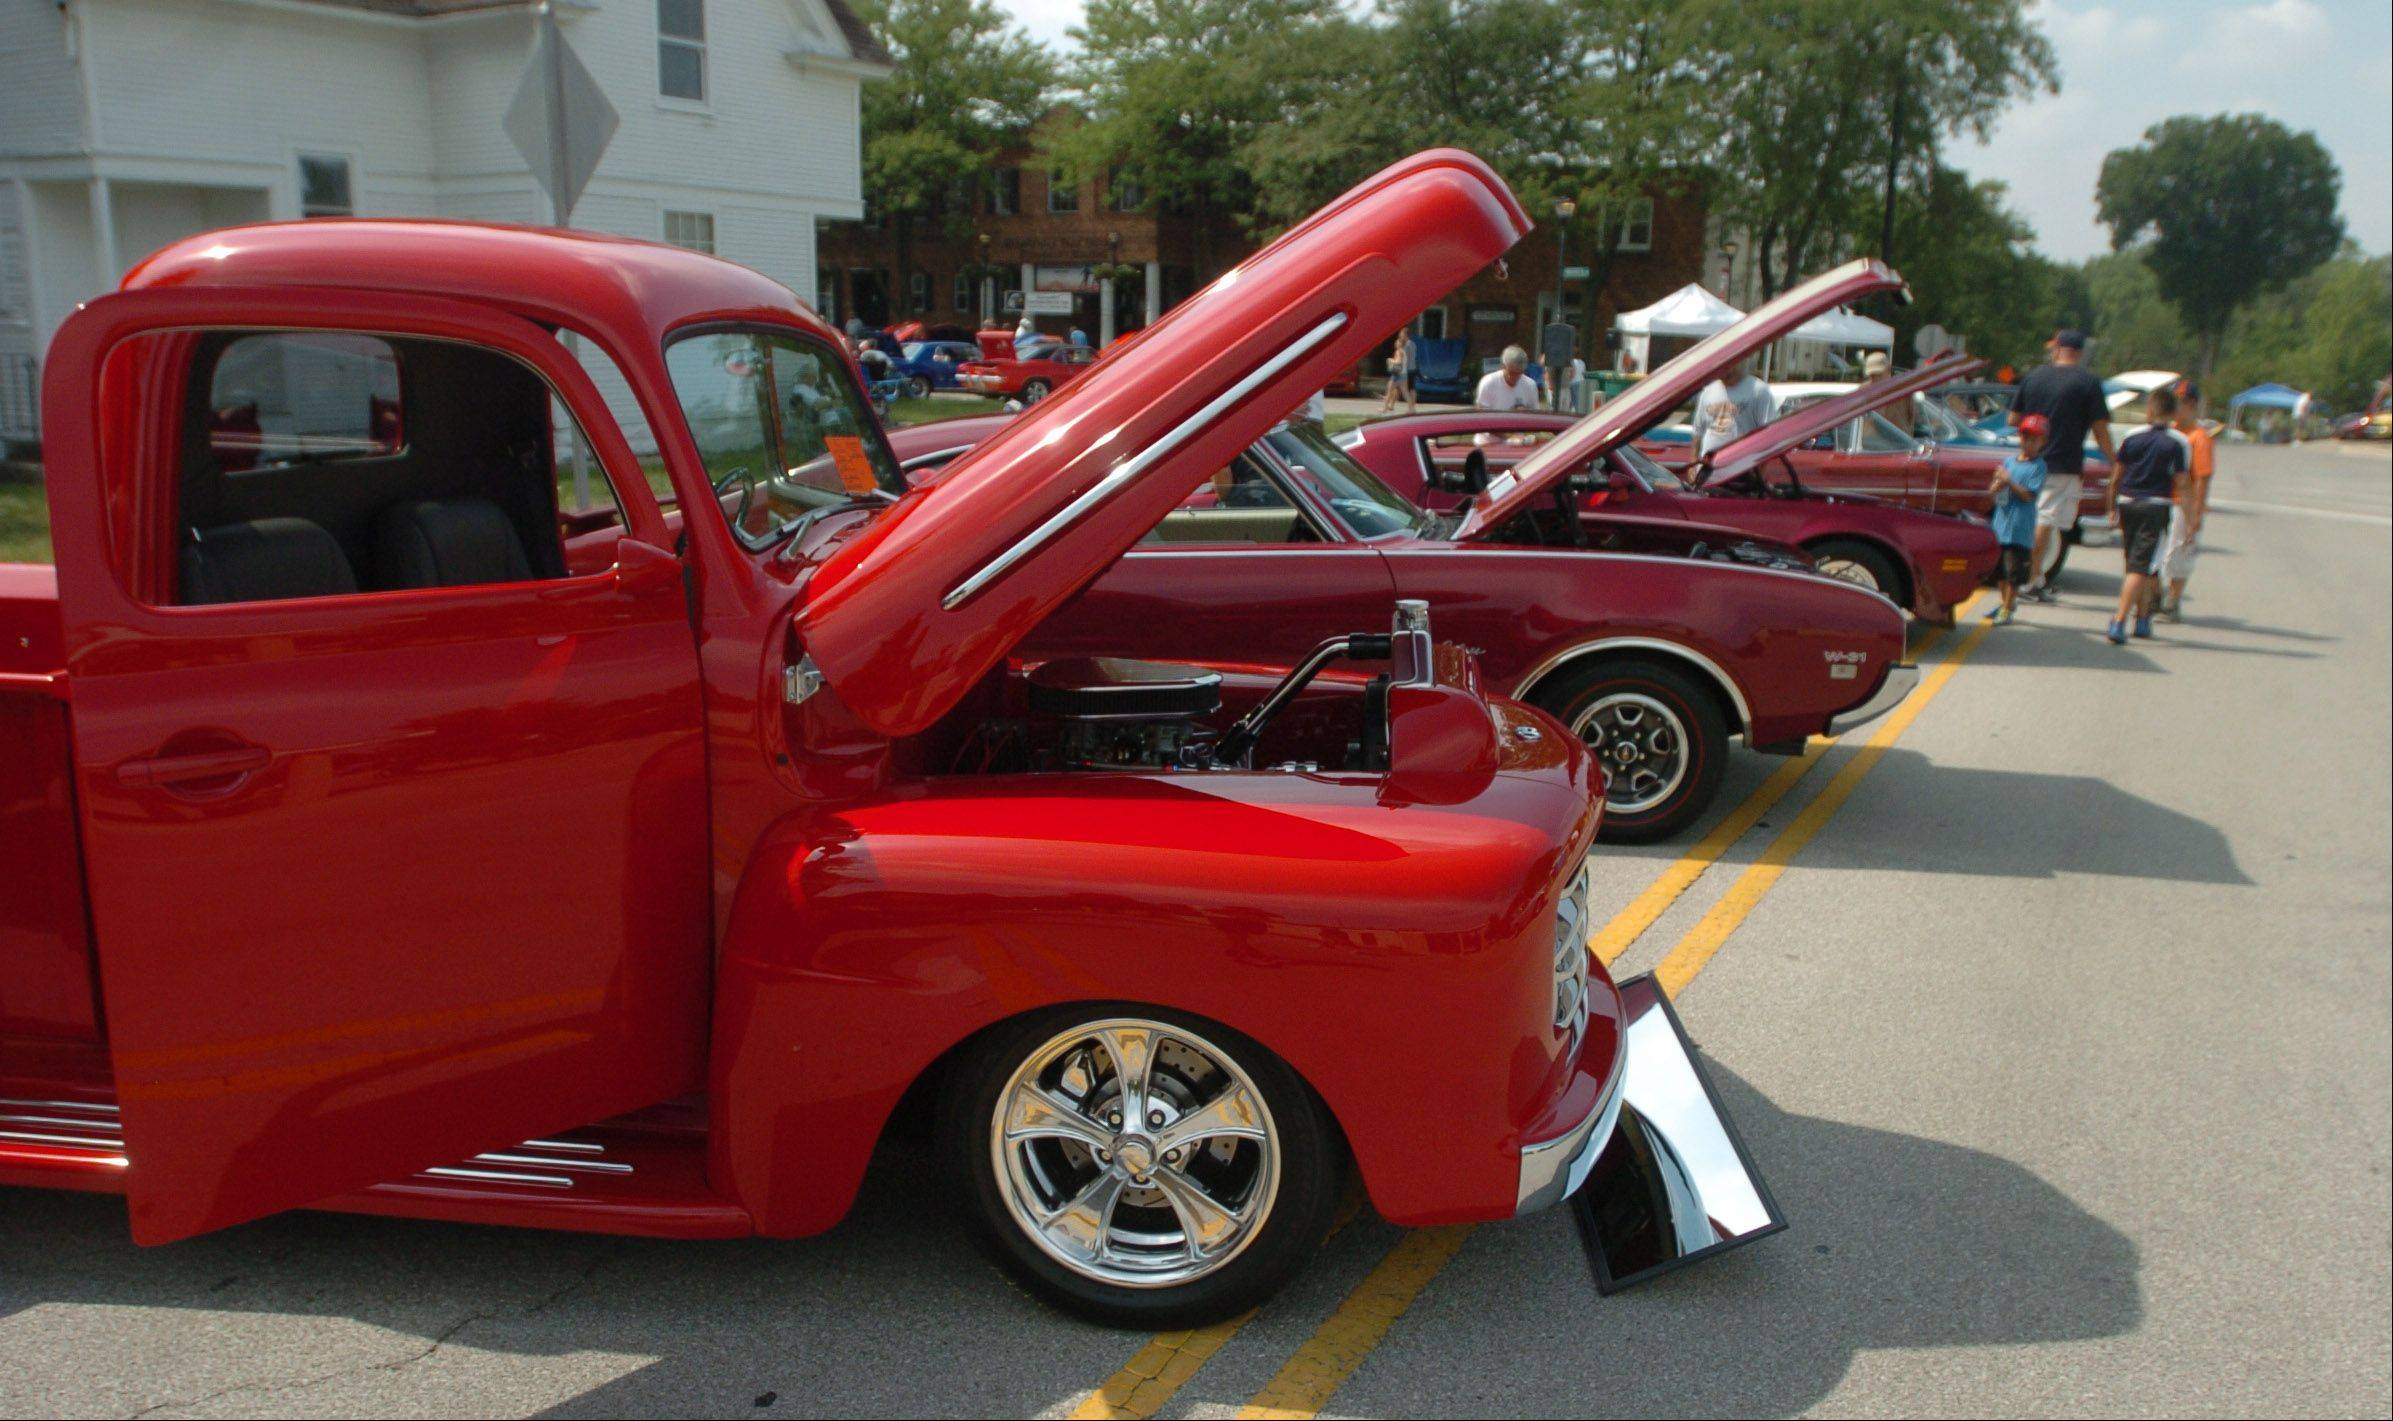 Saturday's car show at the Summer Daze celebration in Warrenville will be one of the highlights of the two-day event.